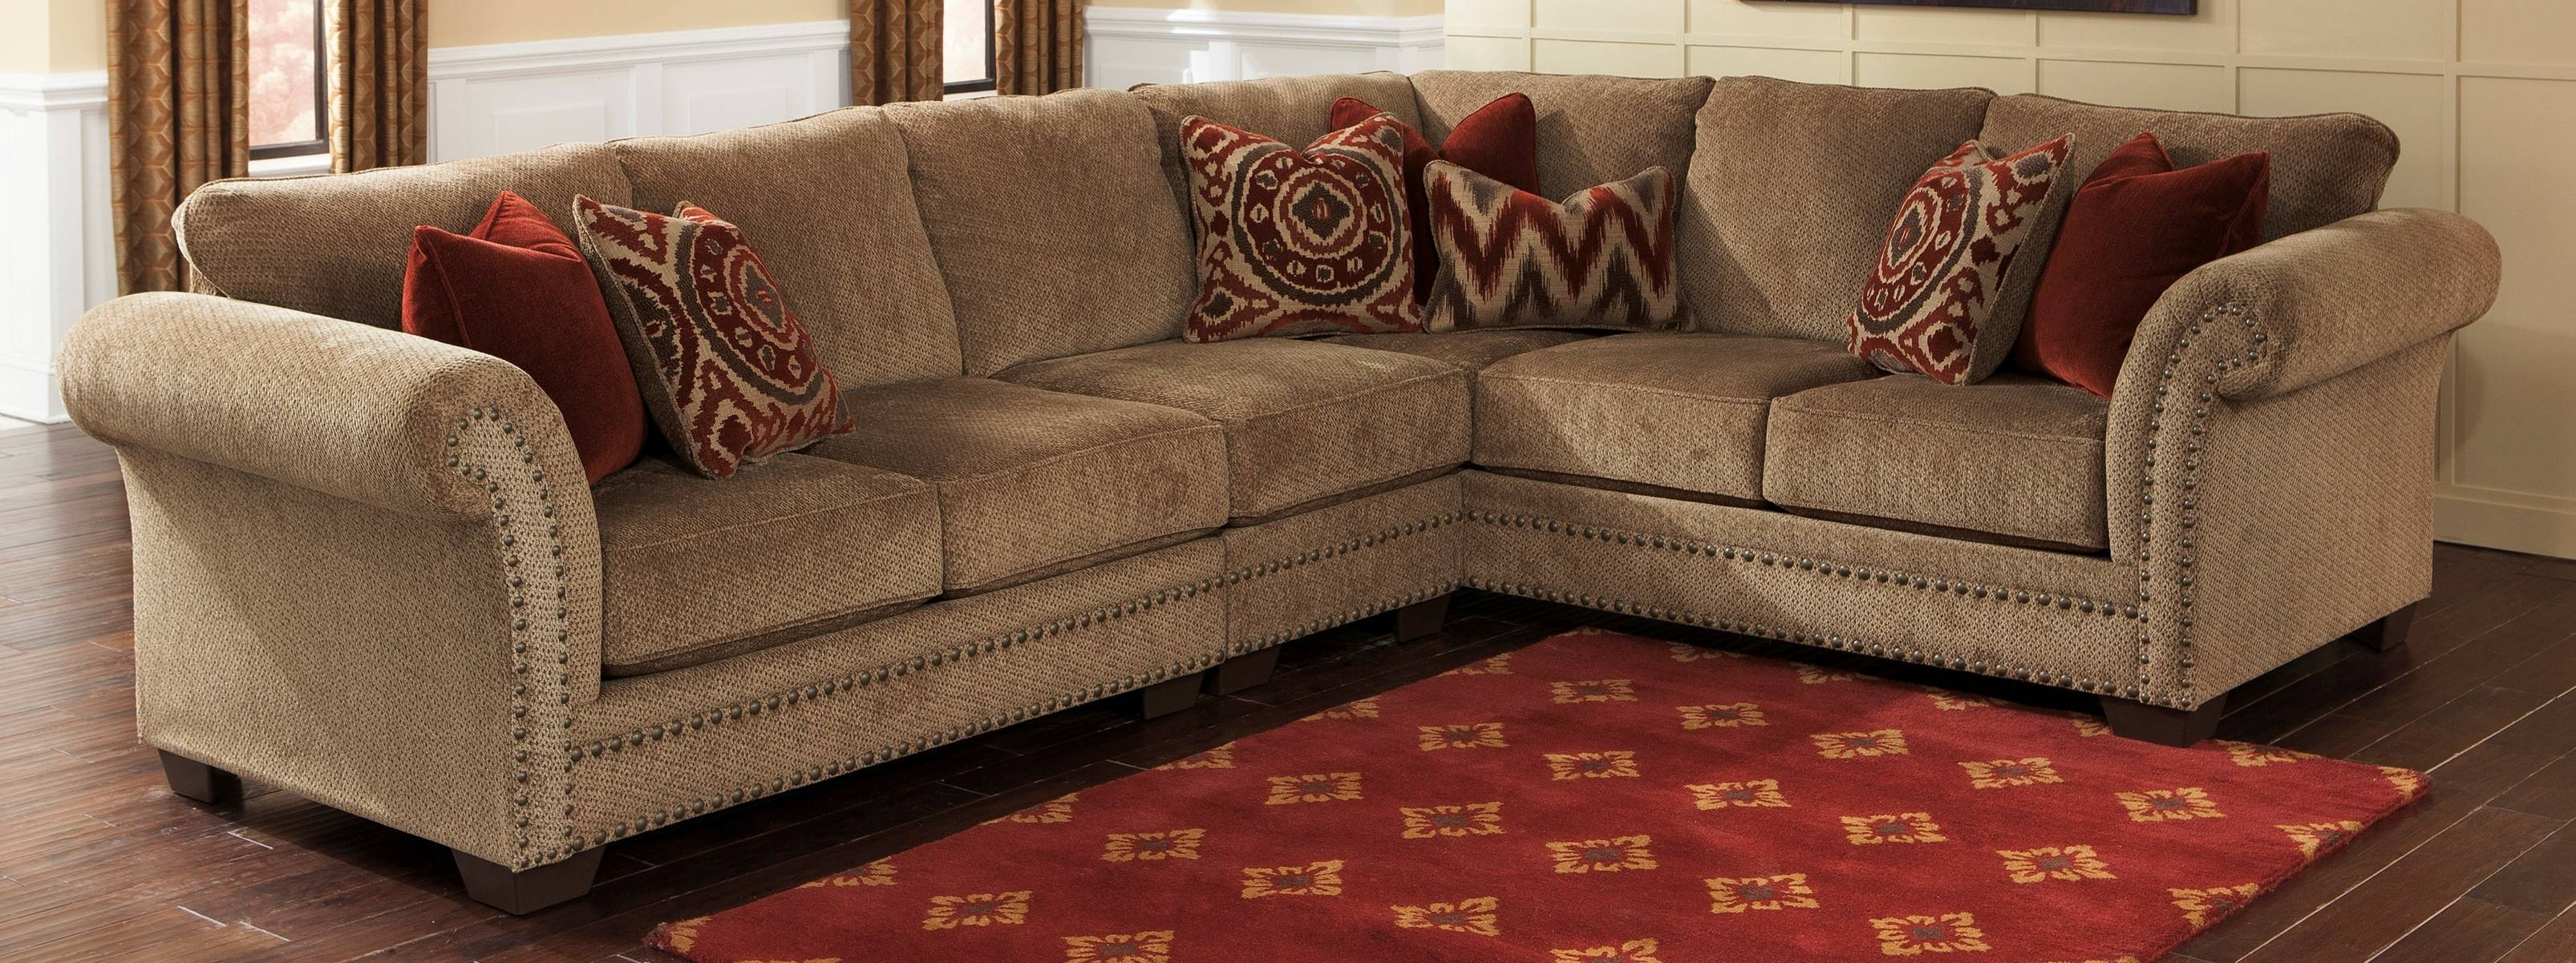 Sofas Center : Cool Ashleyture Sectional Sofas Design With Brown within Ashley Furniture Brown Corduroy Sectional Sofas (Image 15 of 15)